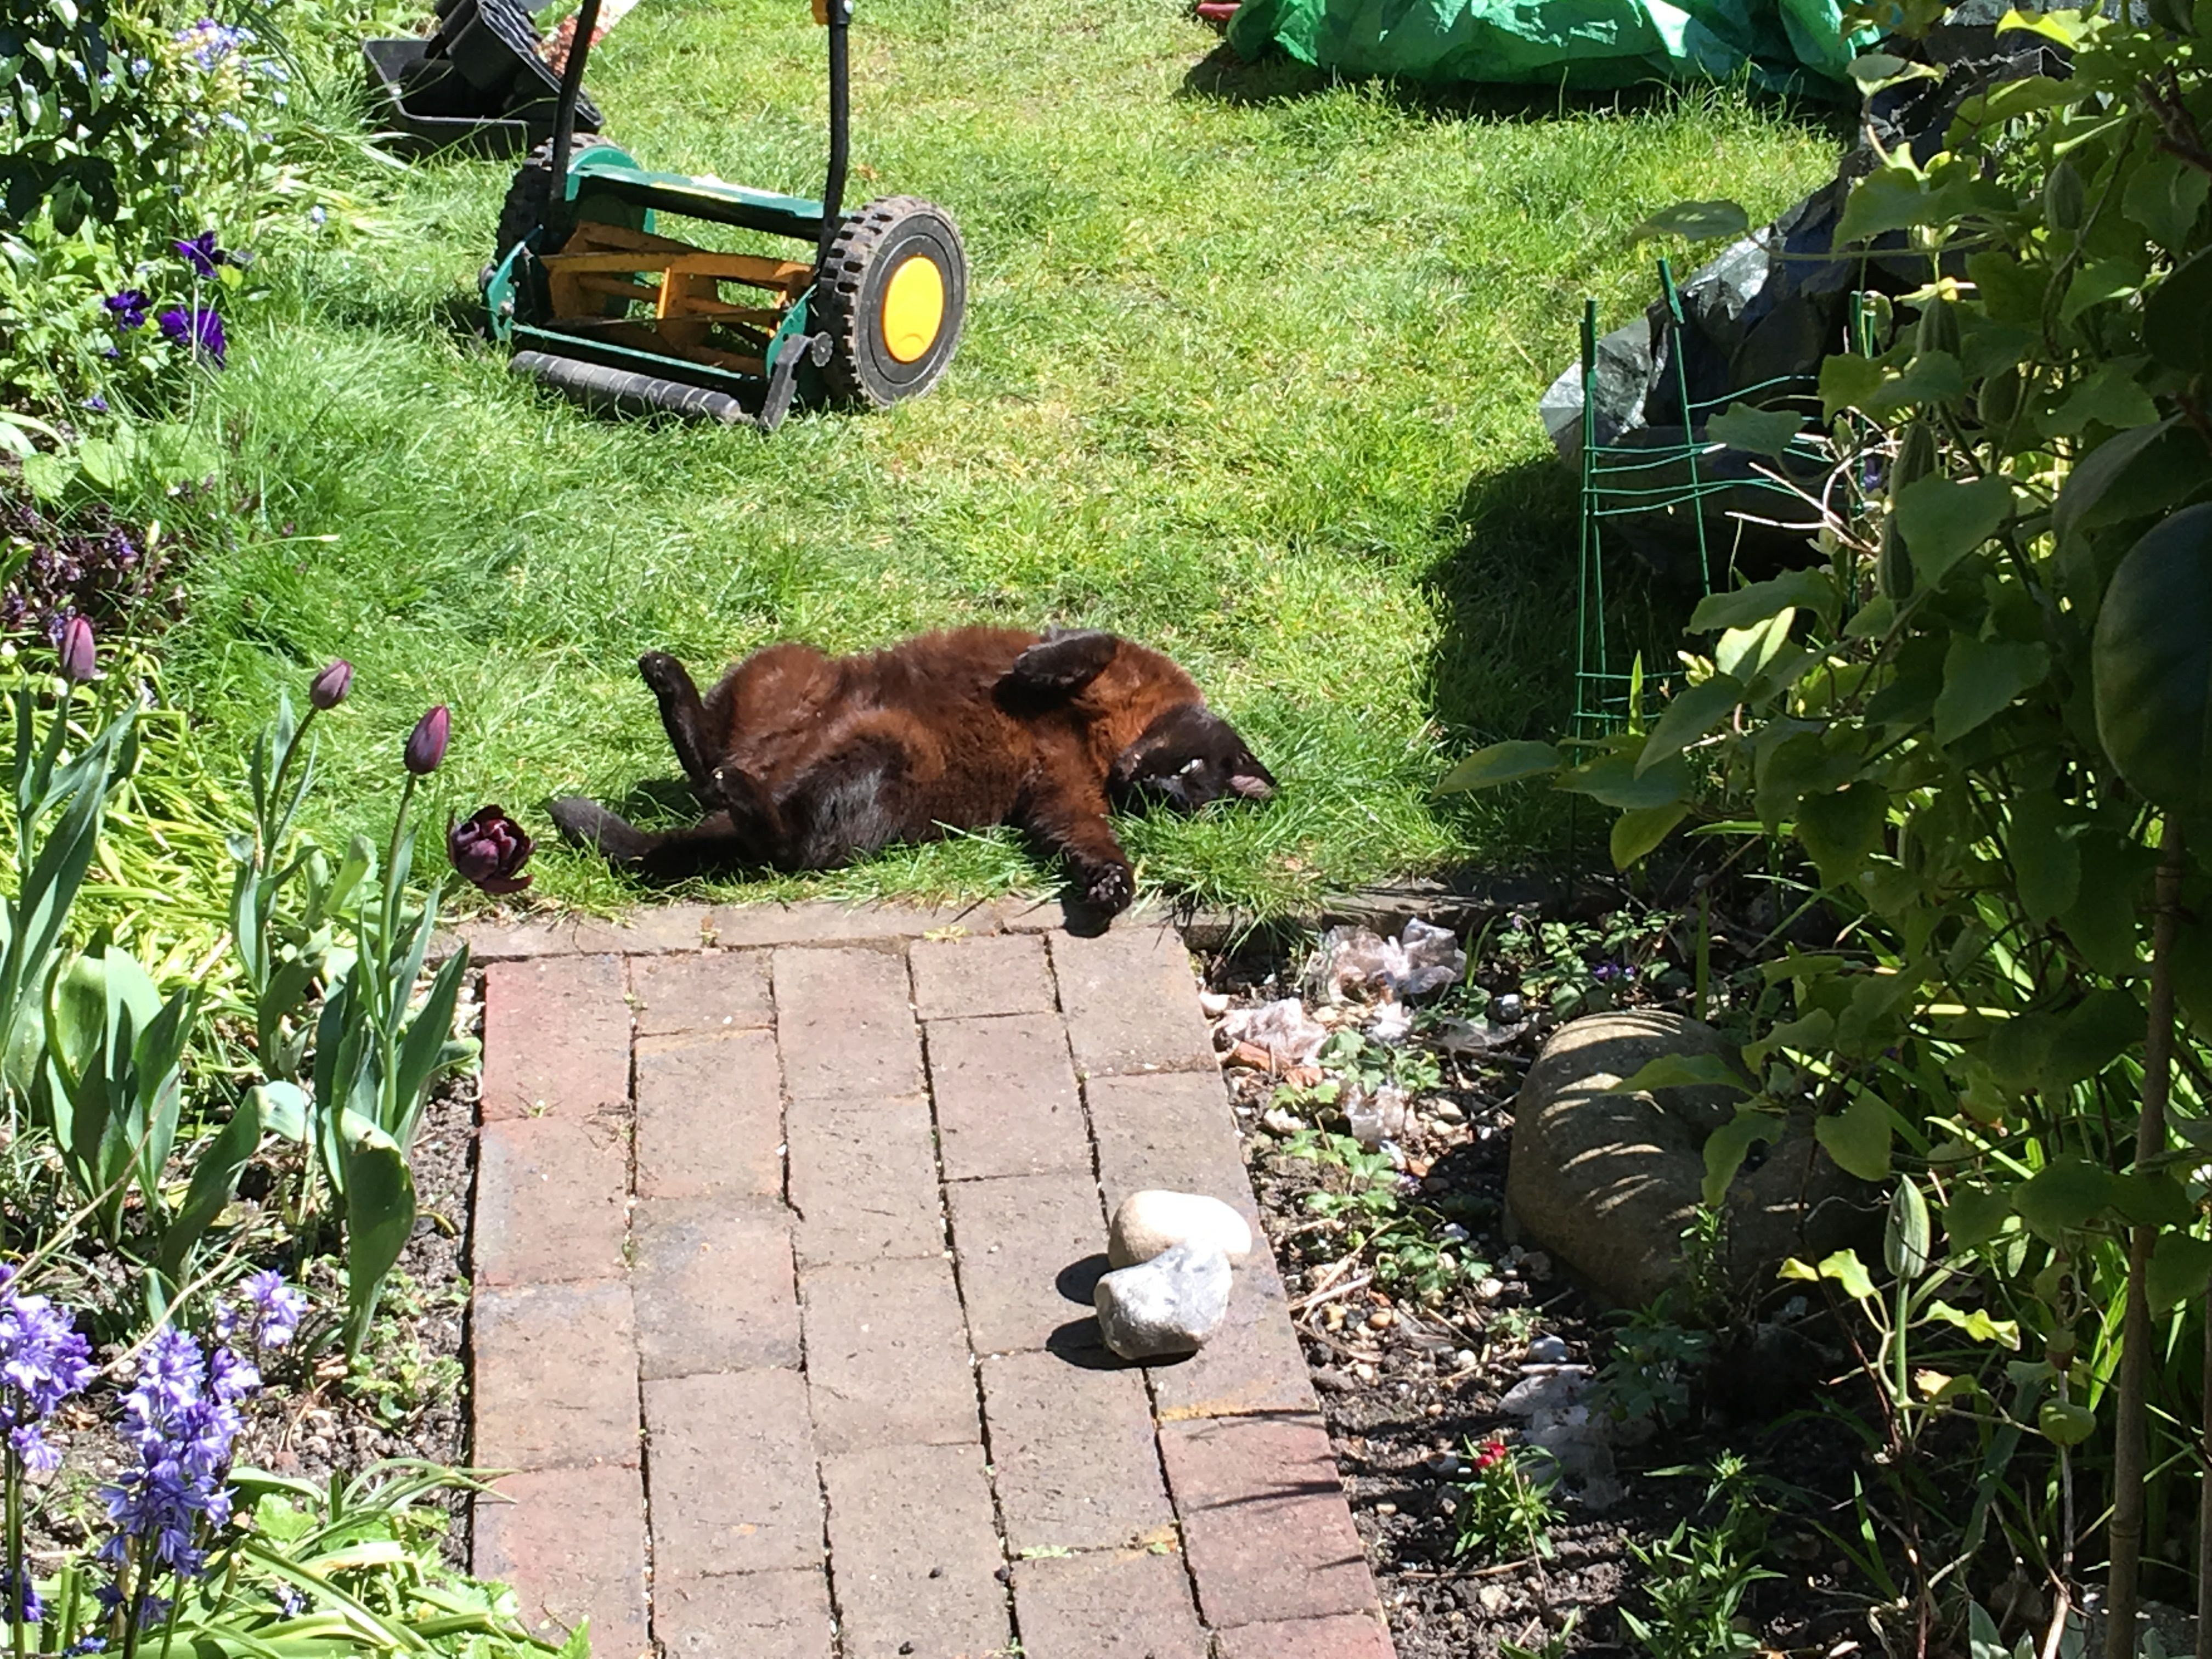 Sheba supervising the lawn cutting